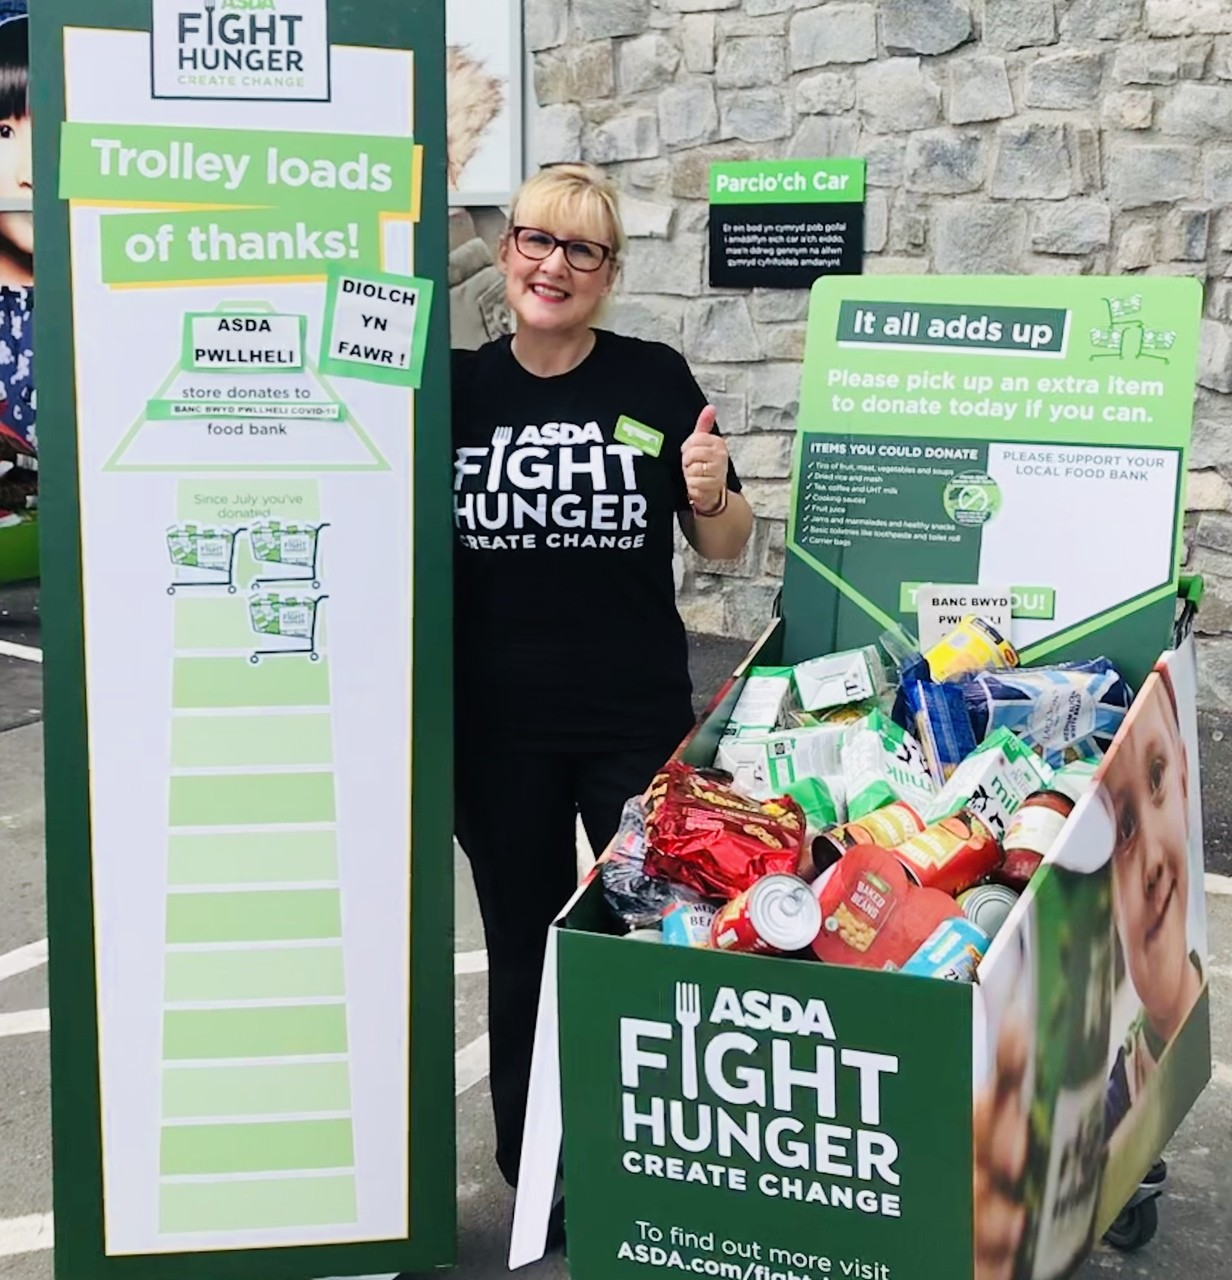 Supporting Fight Hunger Create change  | Asda Pwllheli